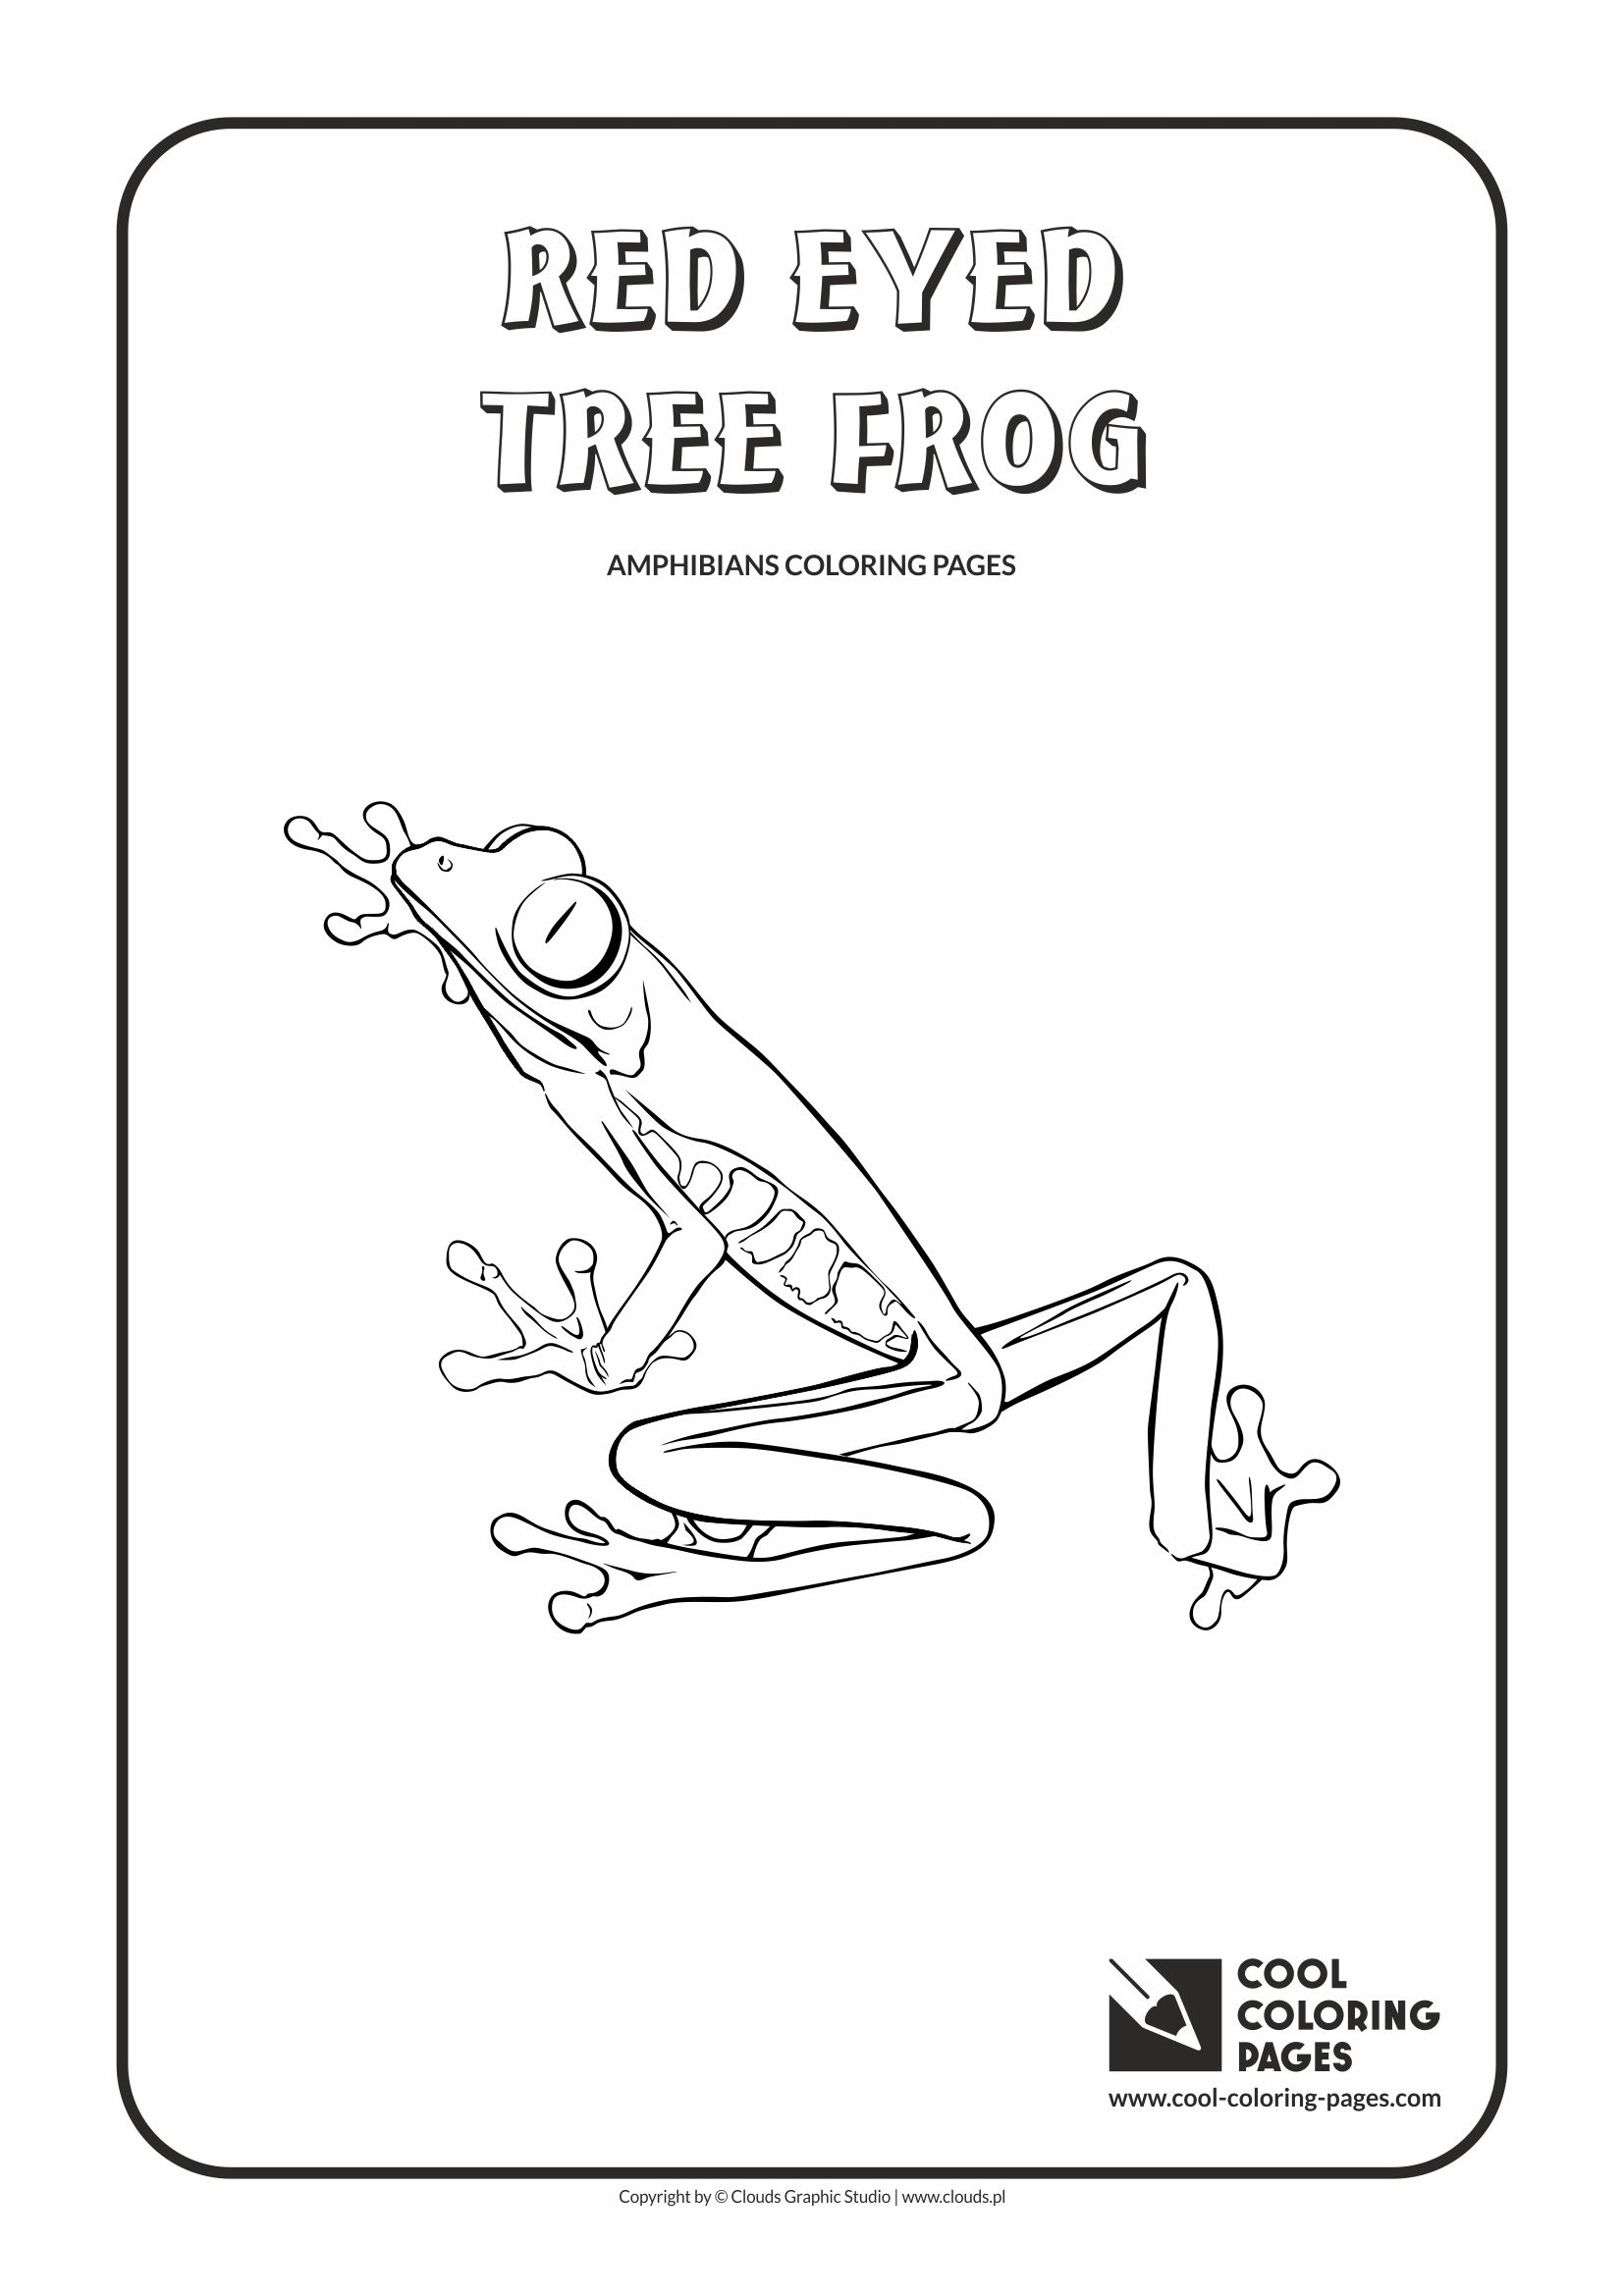 red eyed tree frog coloring page cool coloring pages